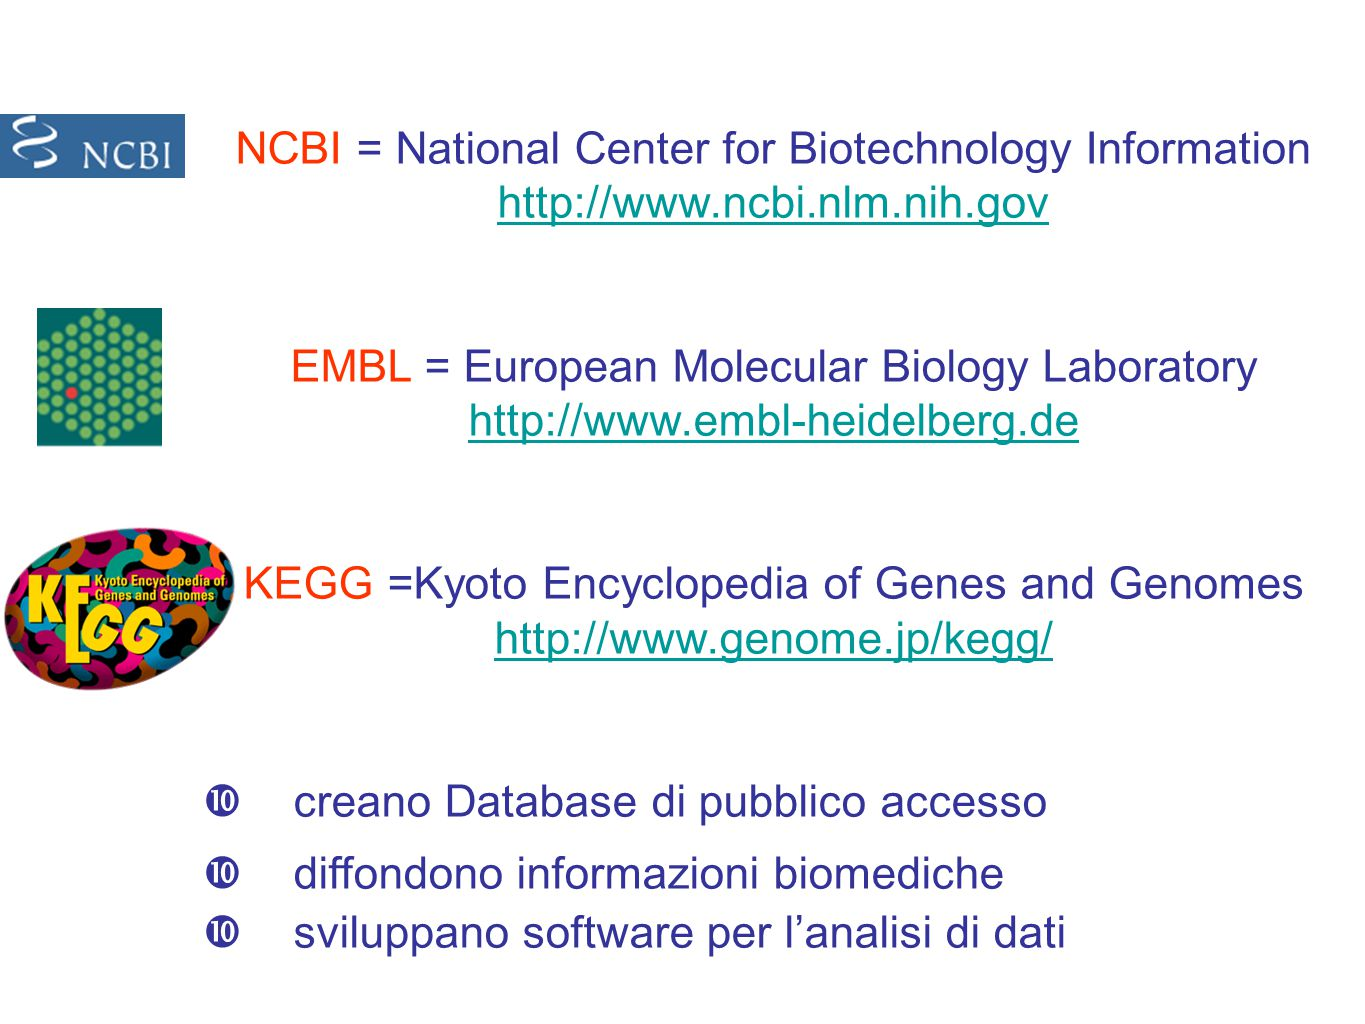 NCBI = National Center for Biotechnology Information